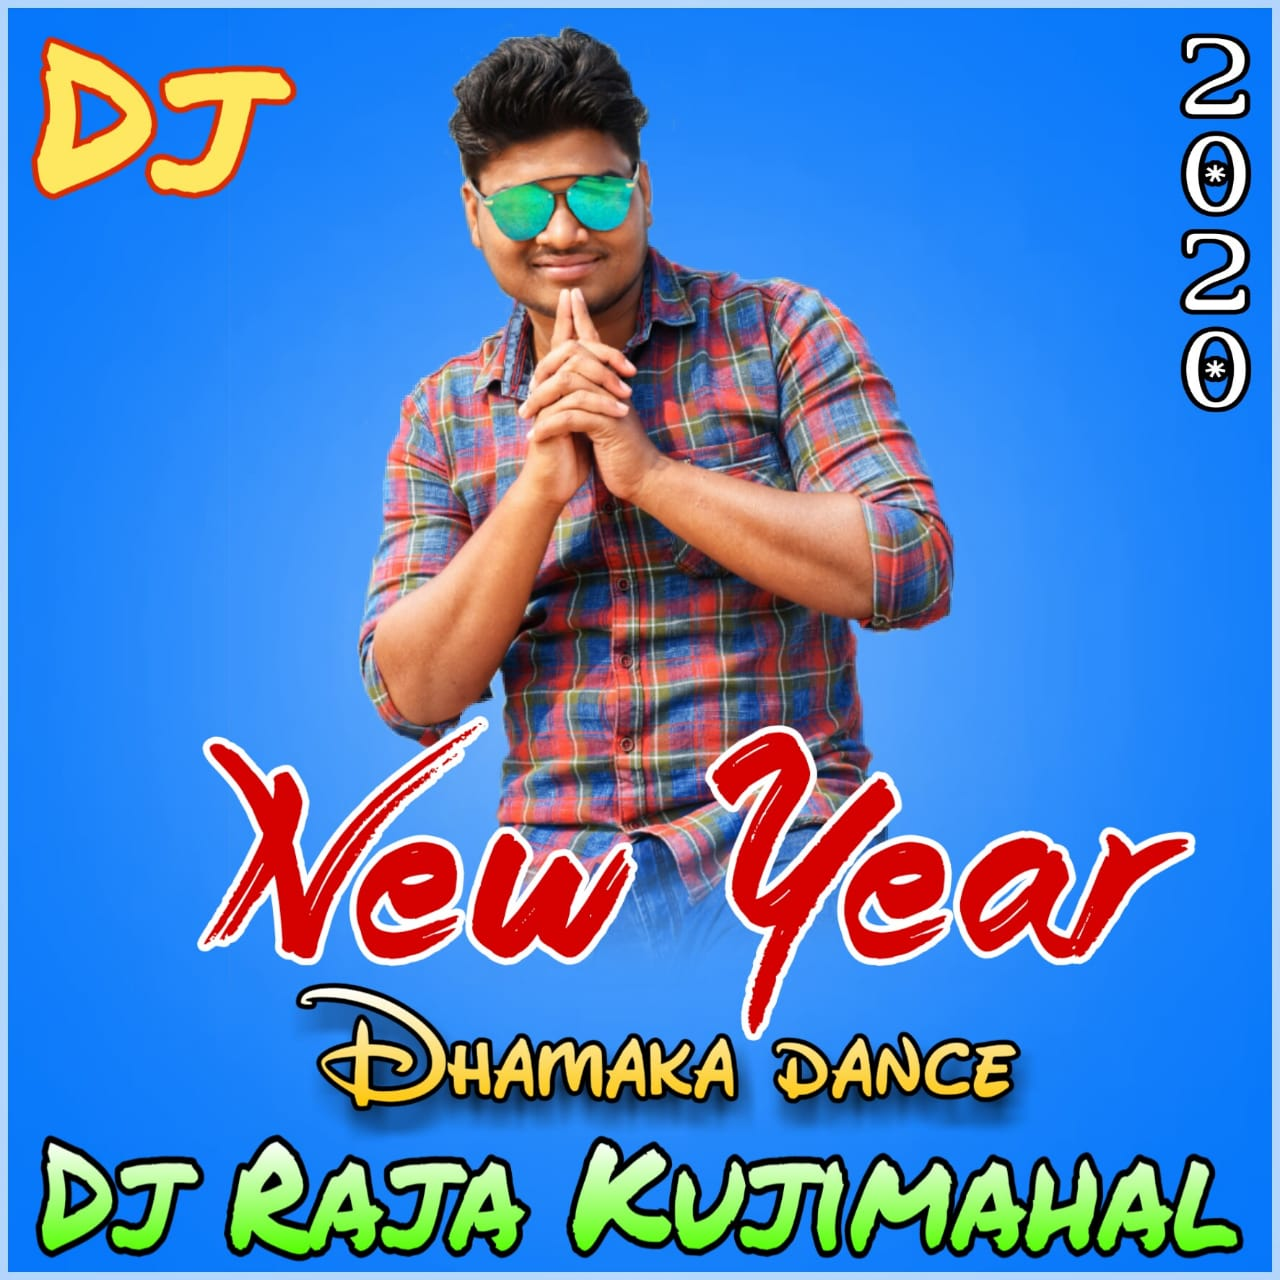 New Year 2020 (Dhamaka Dance) Dj Raja Kujimahal